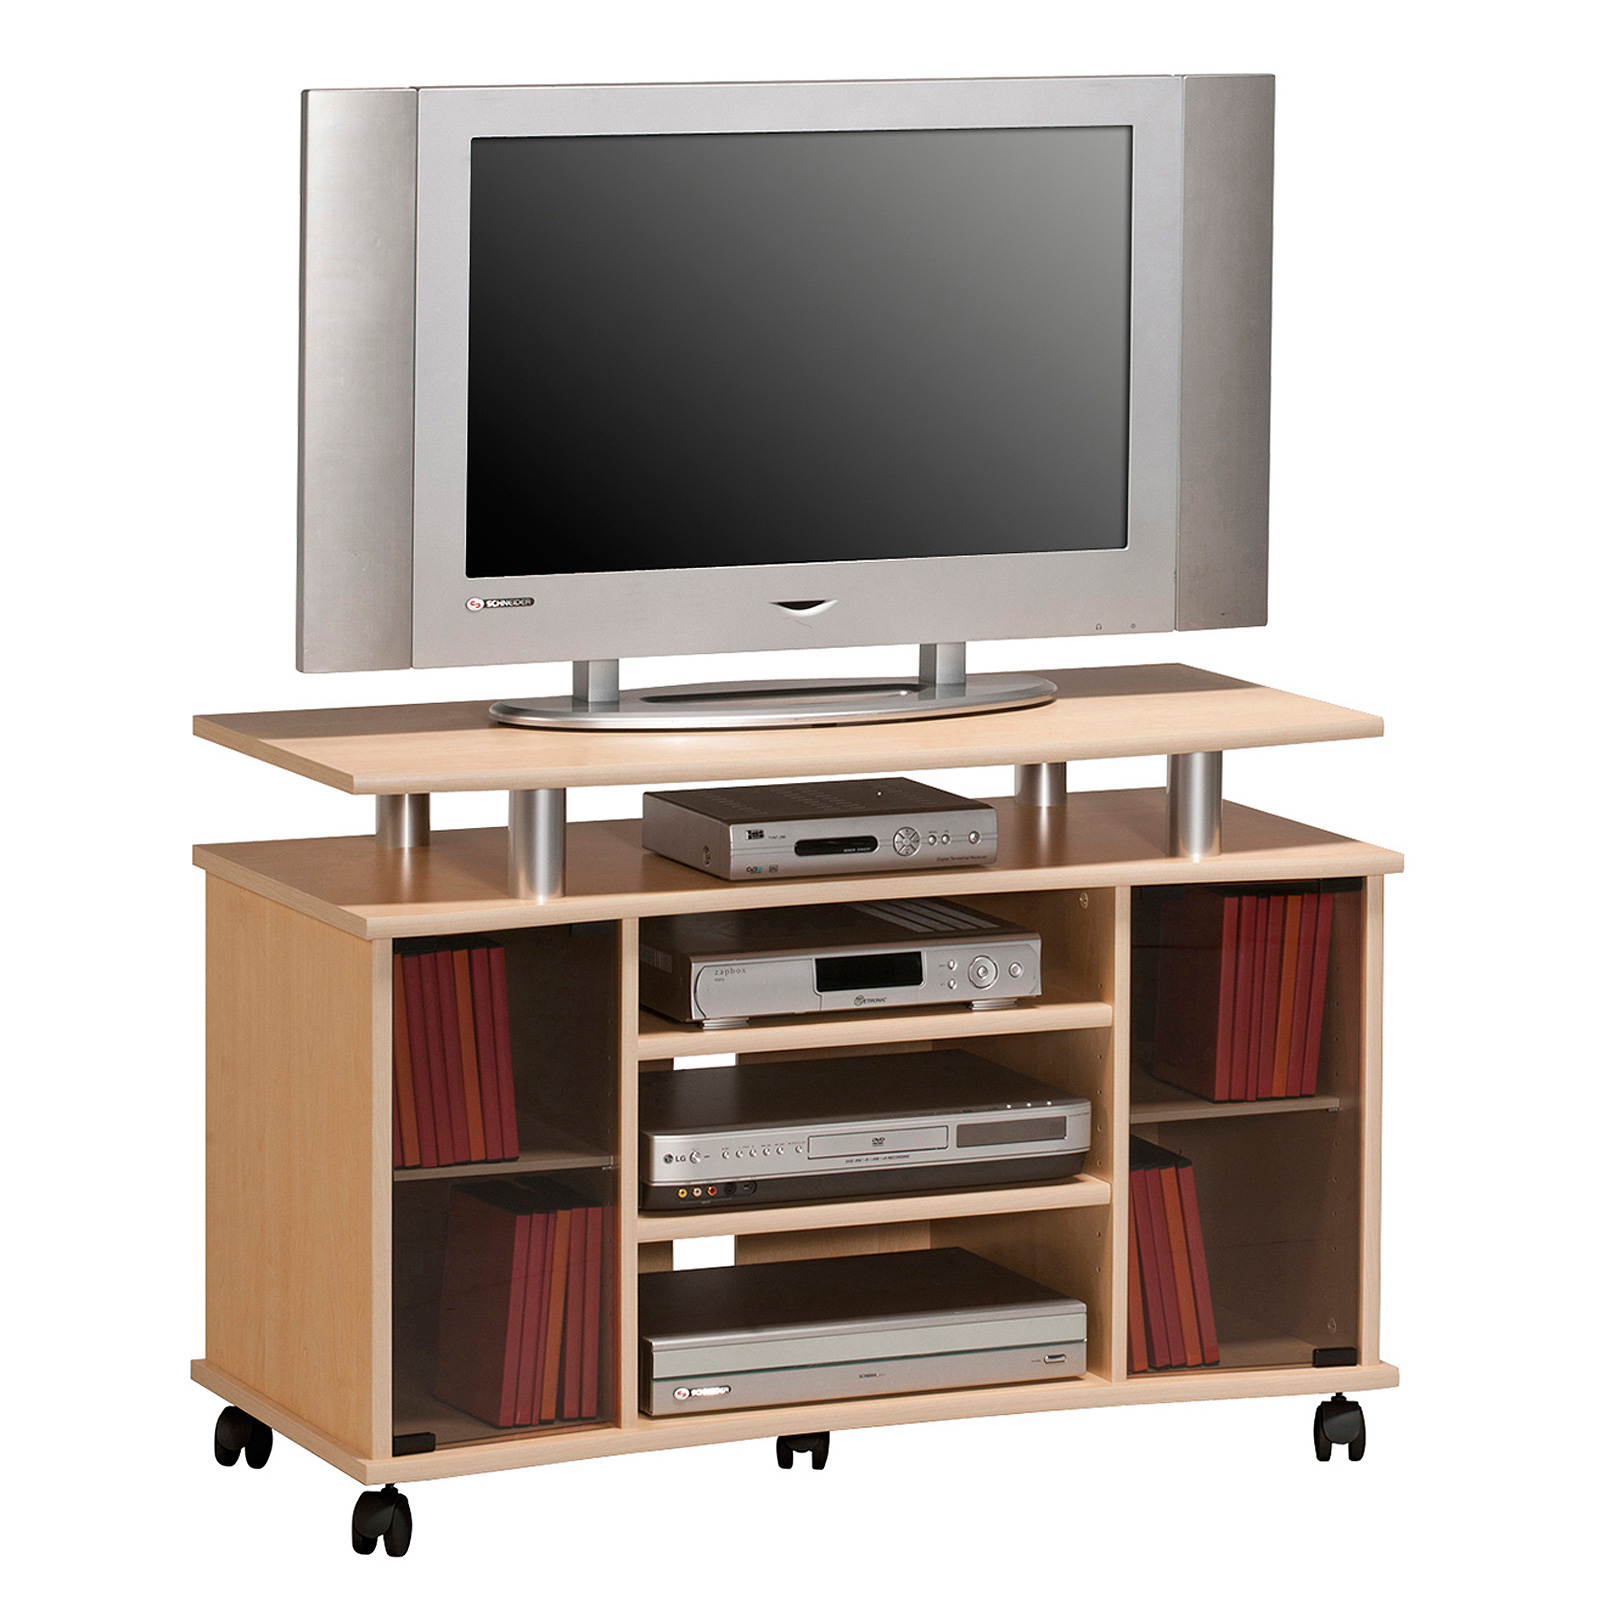 tv rack maja 7362 tv board tv schrank mediam bel als farbauswahl mit rauchglas ebay. Black Bedroom Furniture Sets. Home Design Ideas